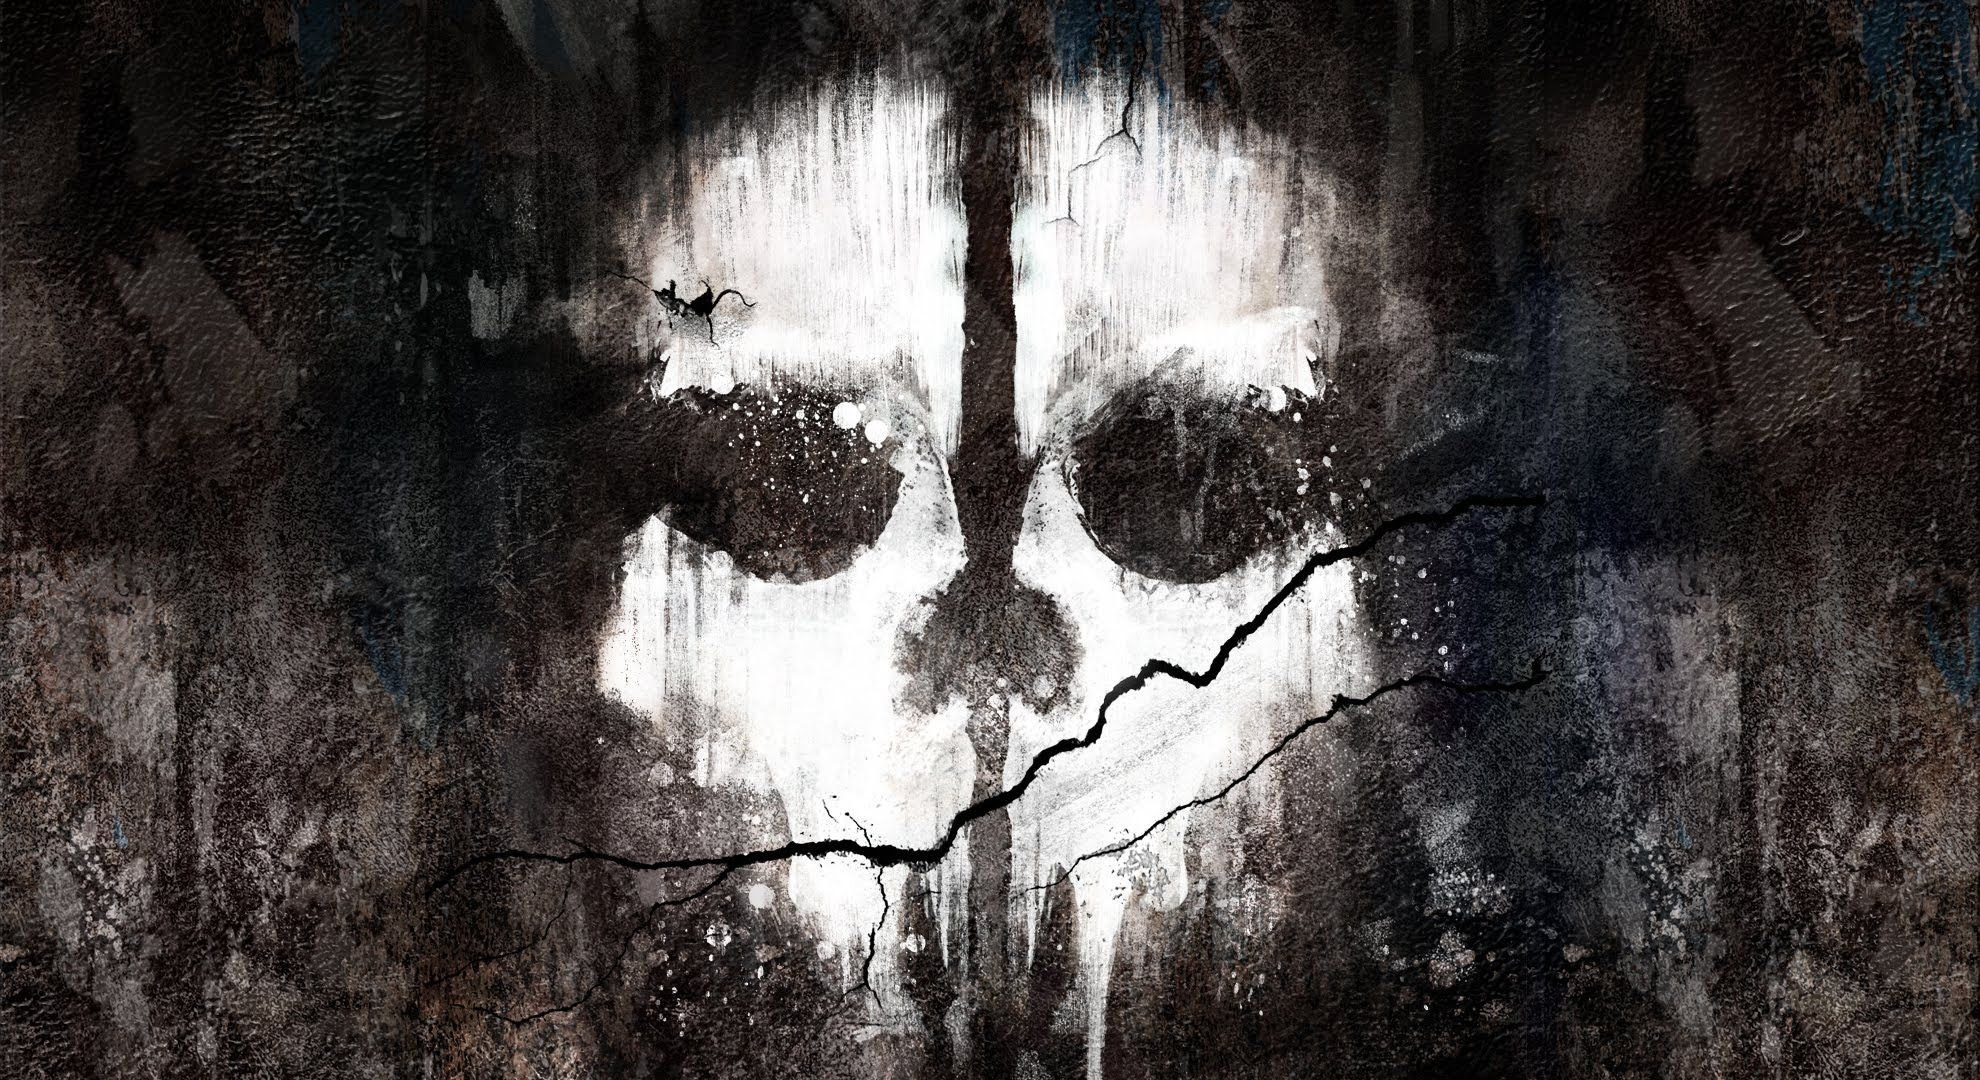 Call Of Duty Ghost Mask Desktop Wallpaper | HD Wallpapers ...